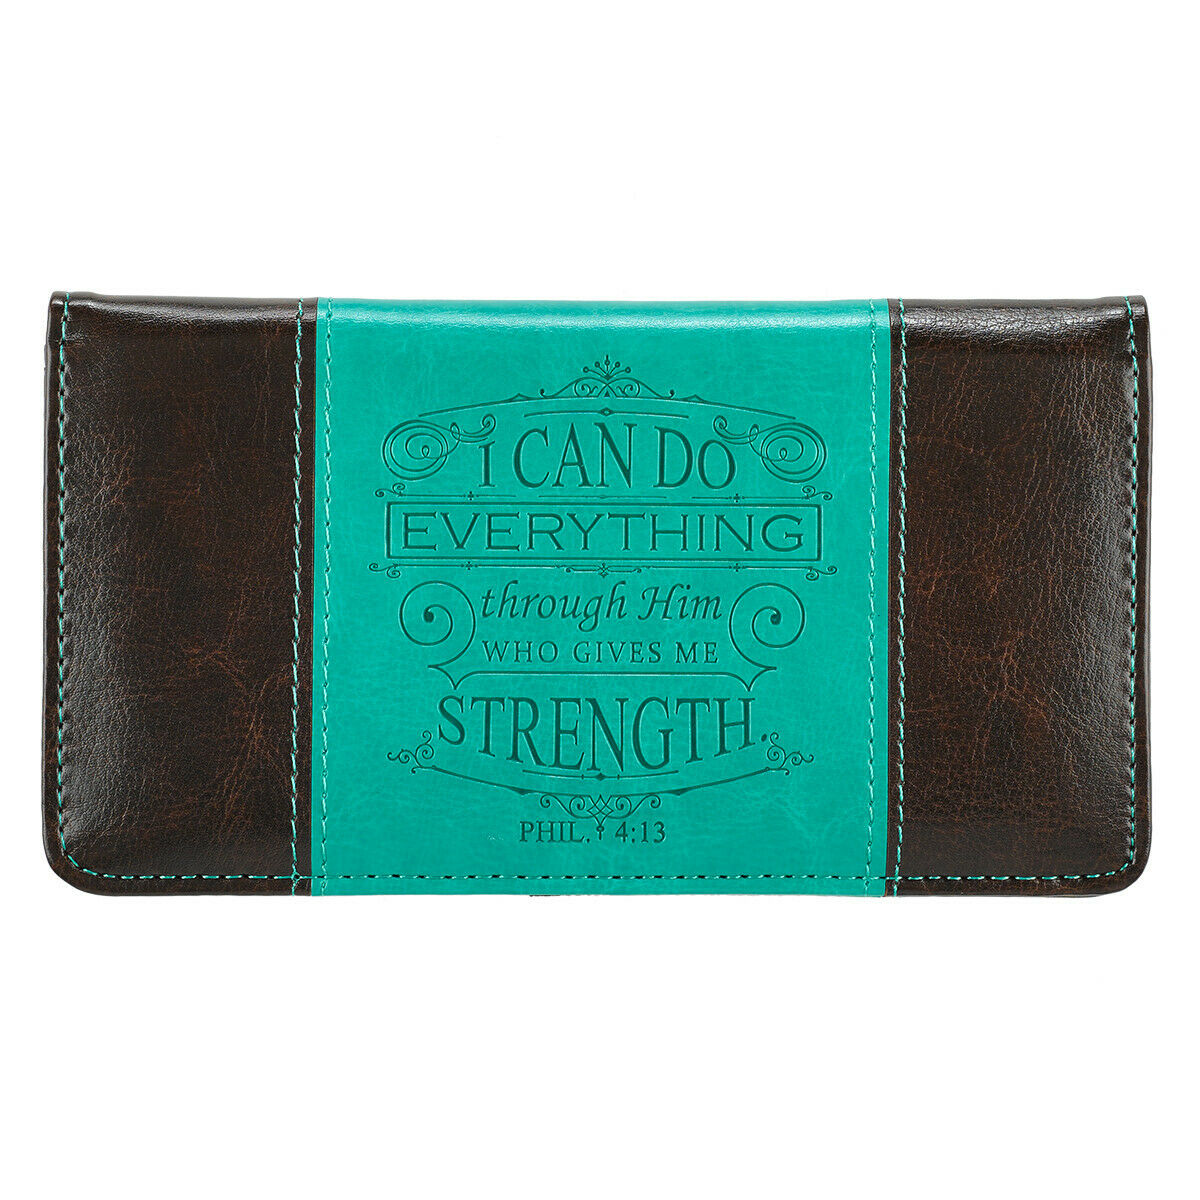 Checkbook Cover I Can Do Everything Through Him Who Gives Me Strength Phil. 4:13